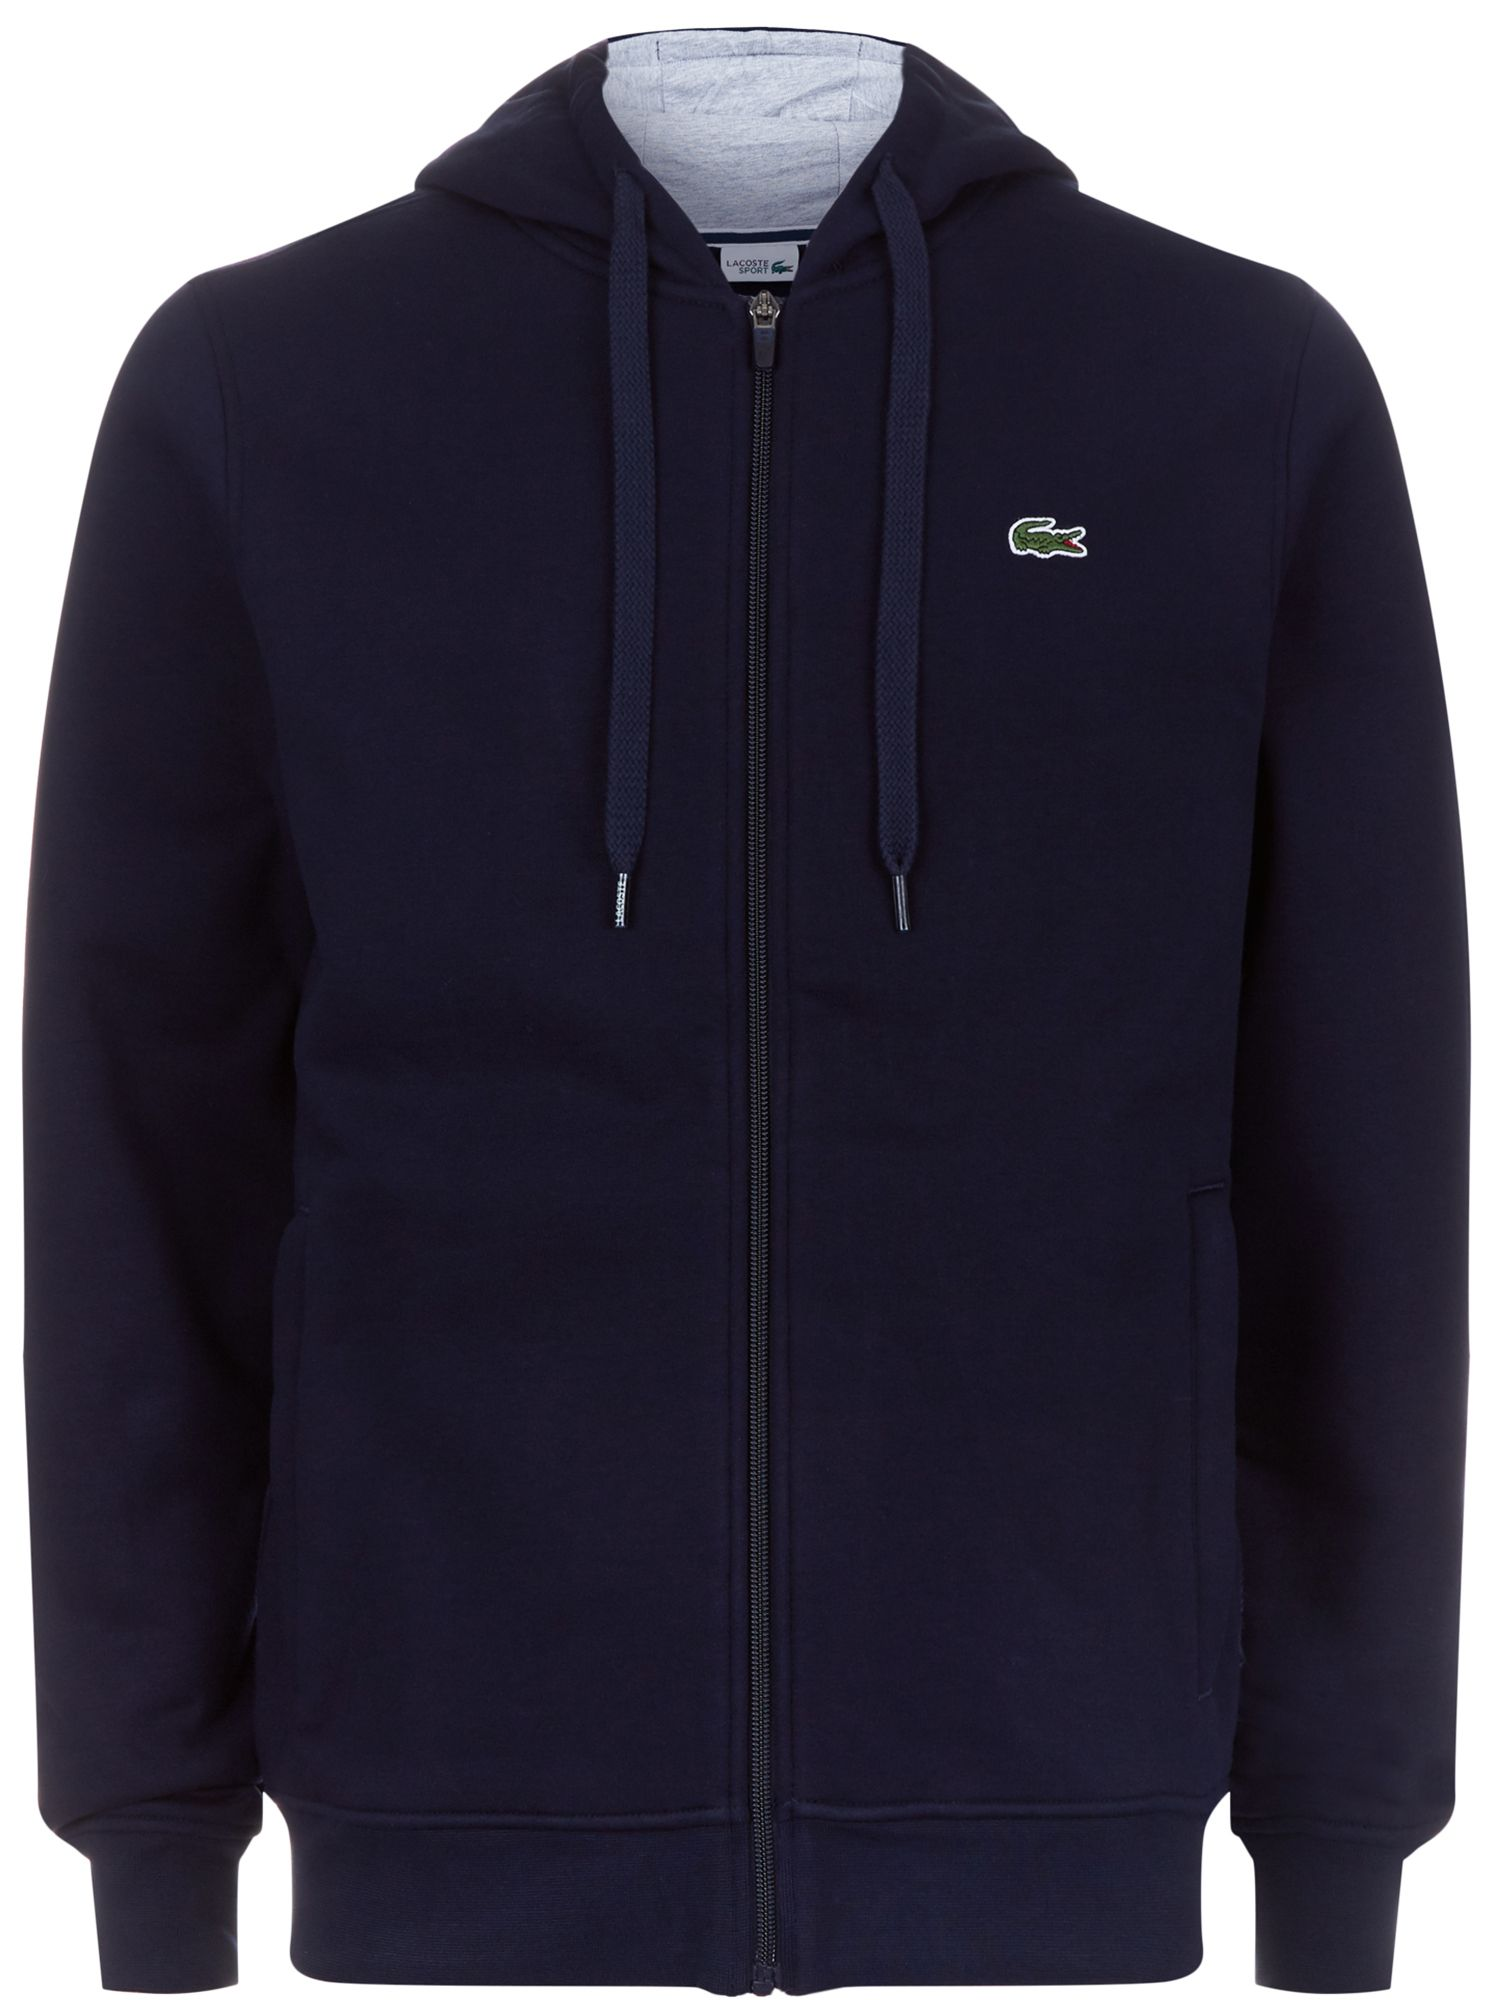 Men's Lacoste Lacoste Hooded Fleece Sweatshirt, Blue Silverlic